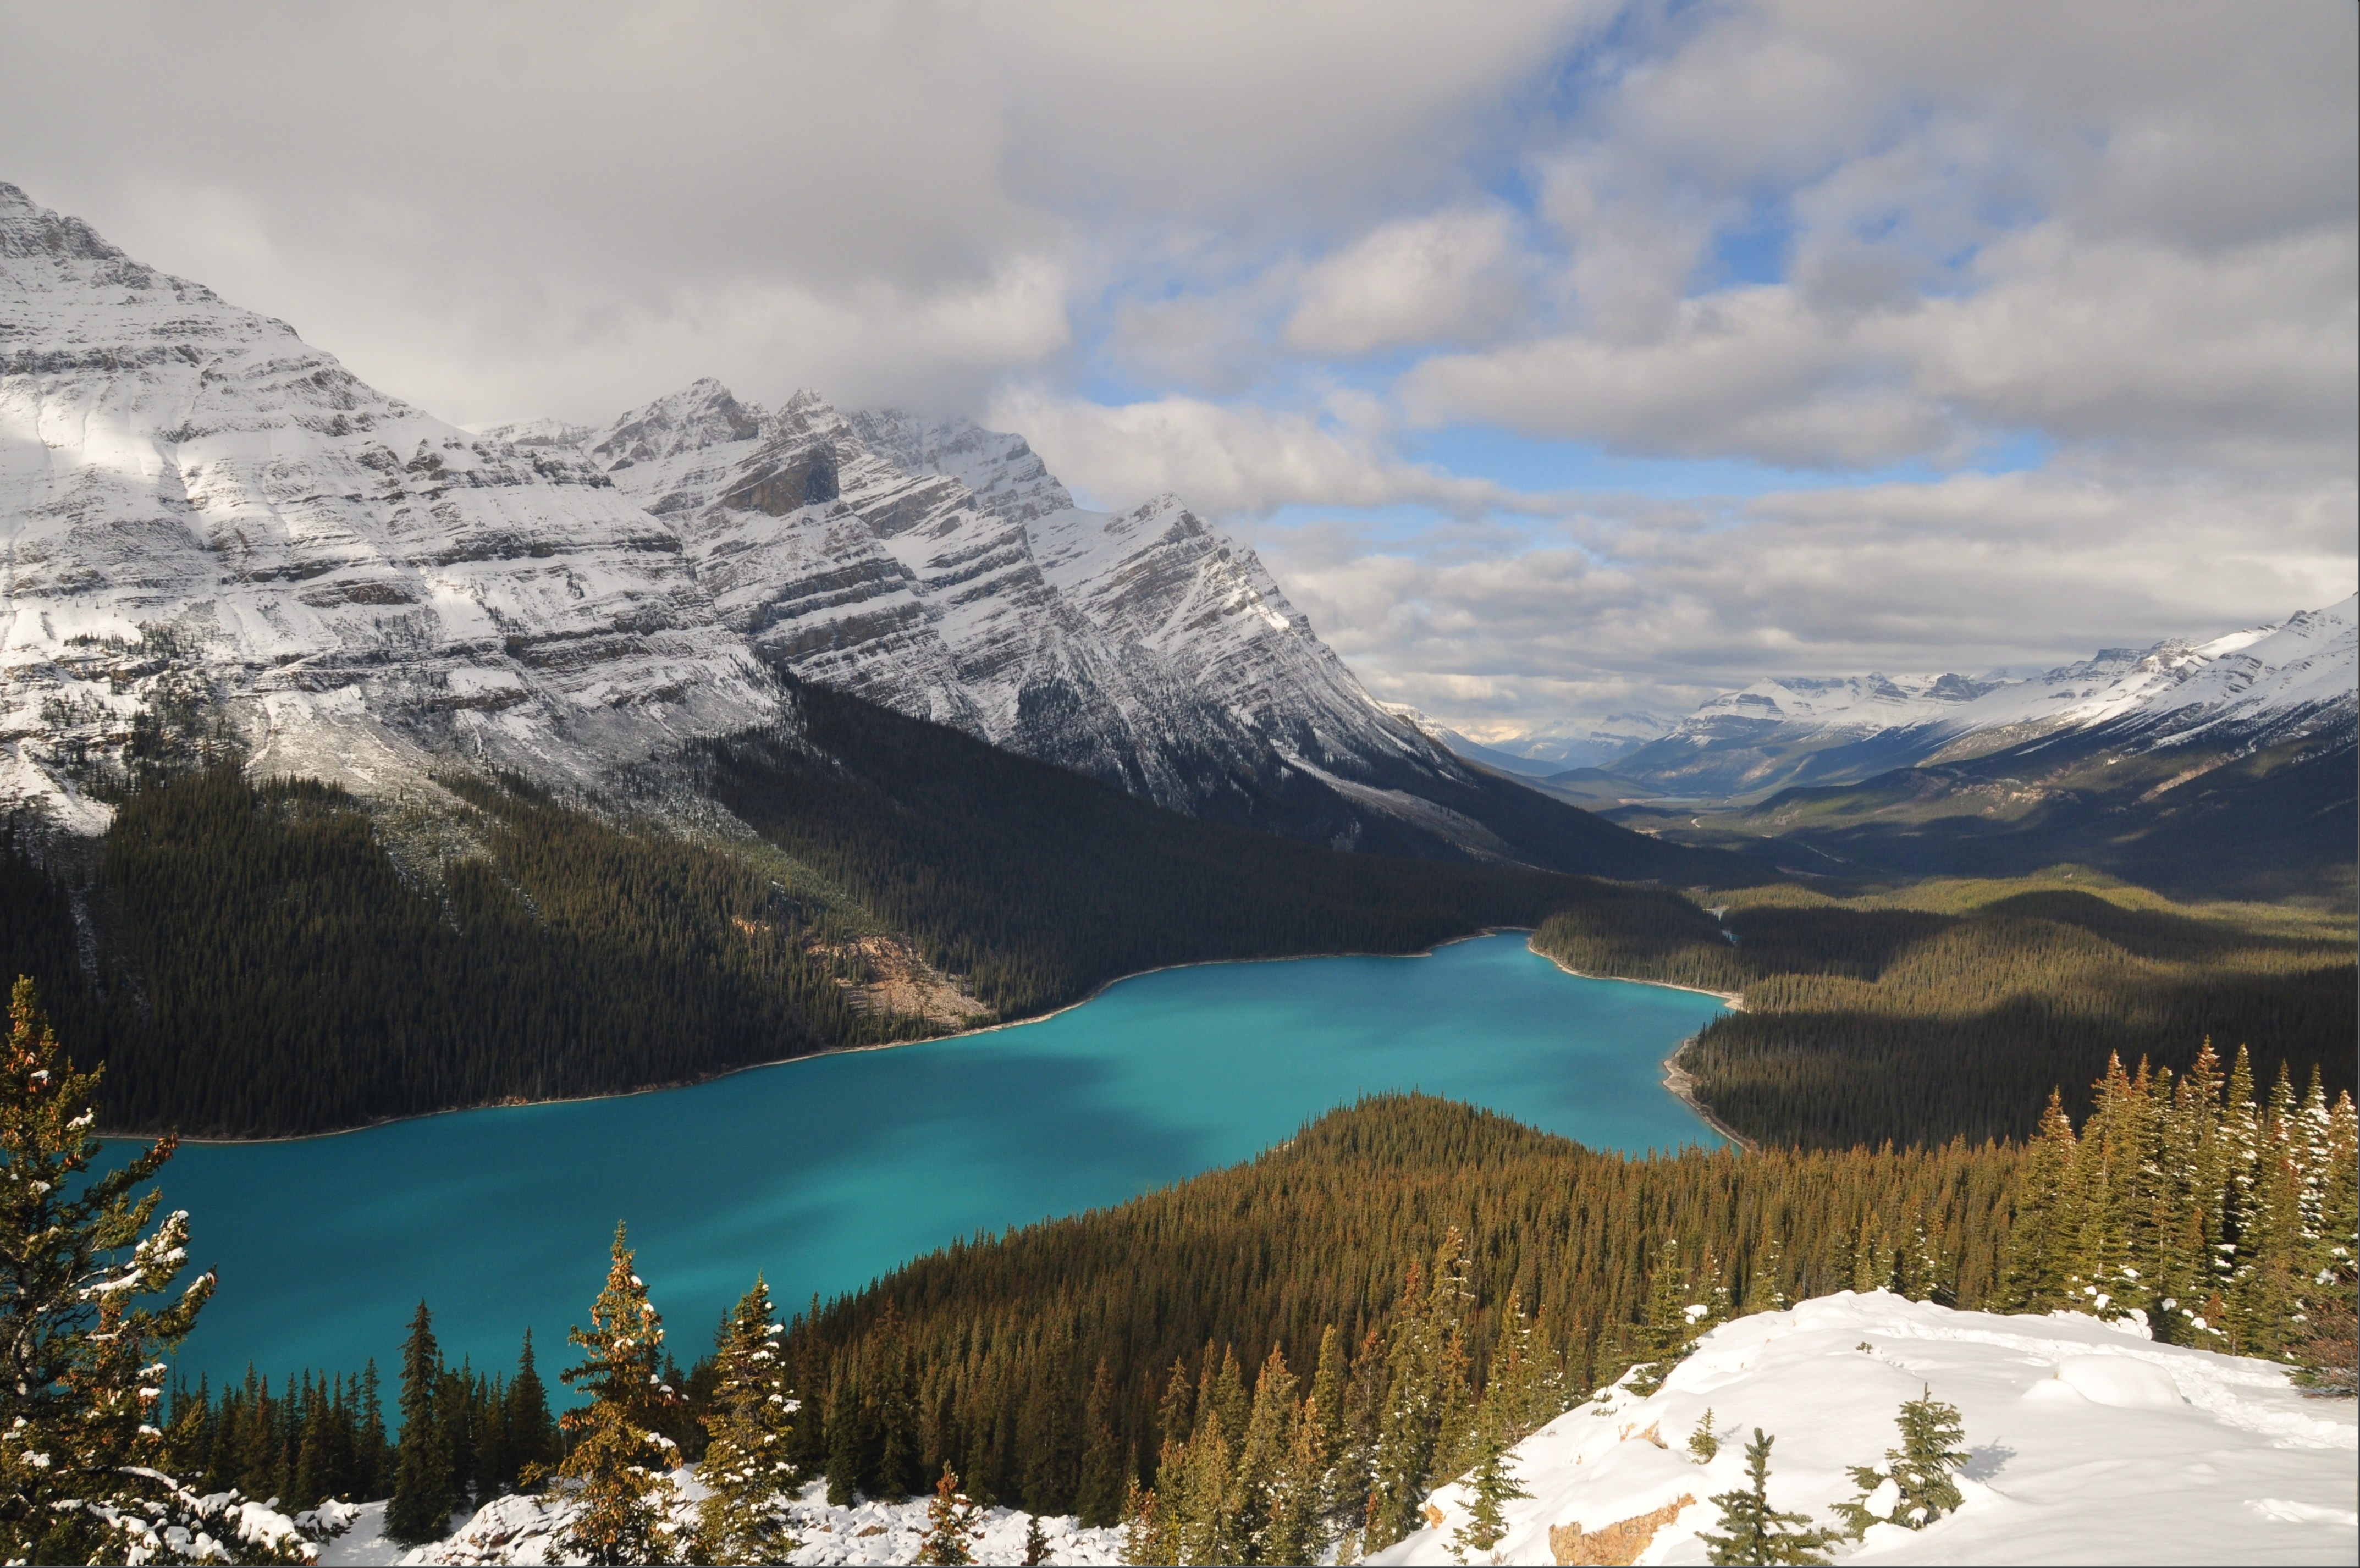 Peyto Lake, Icefields Parkway, Banff National Park - Bruce Witzel photo